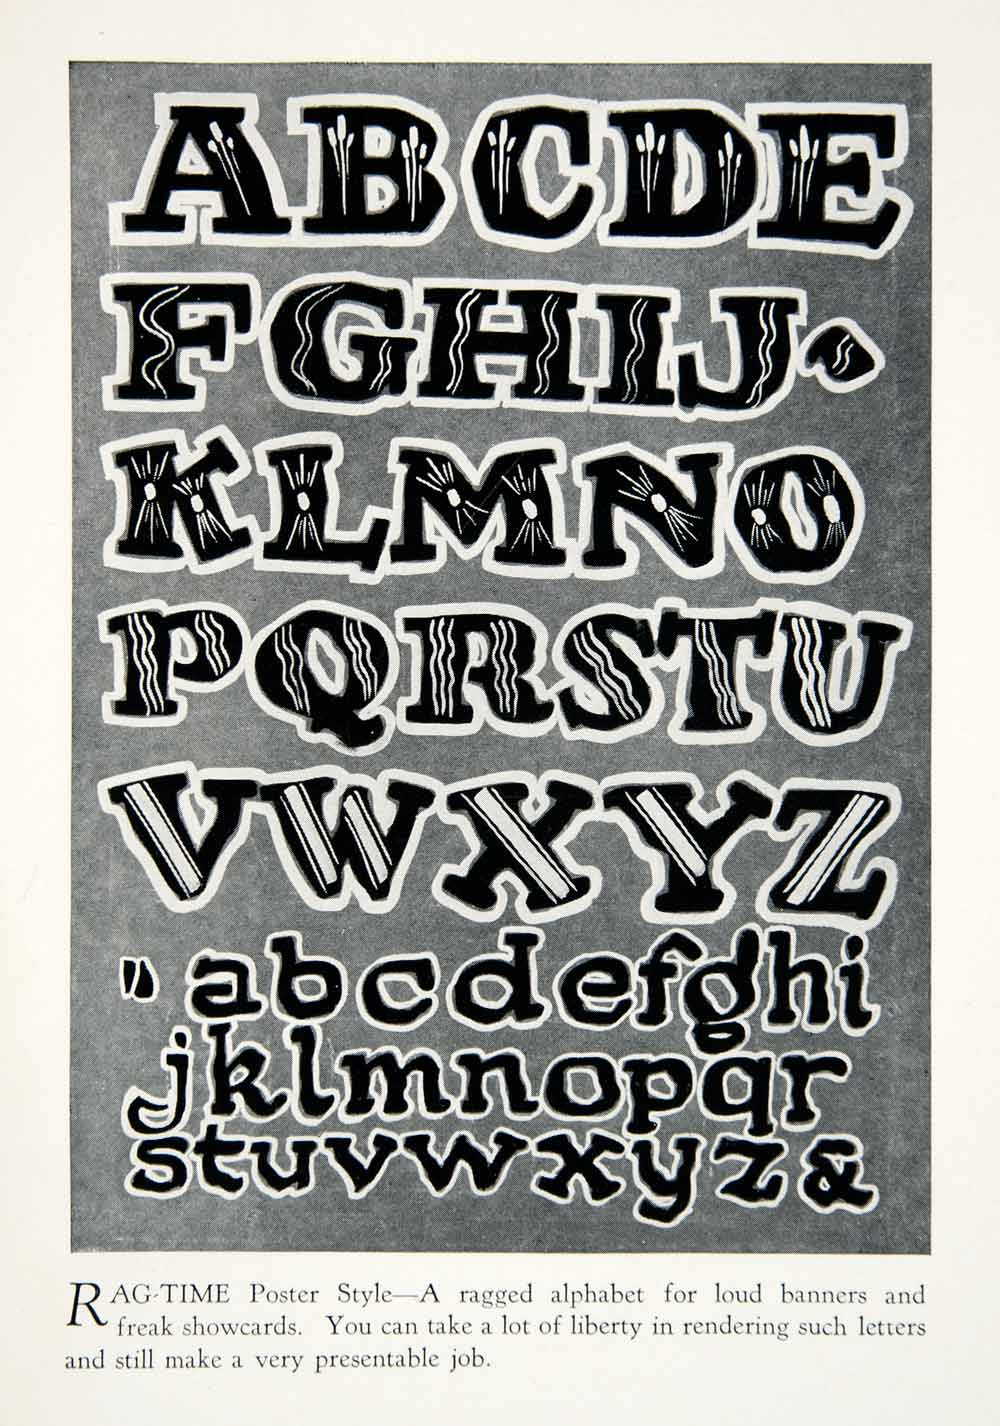 1928 Print Ragtime Poster Style Typography Alphabet Letter Graphic Design XDG4